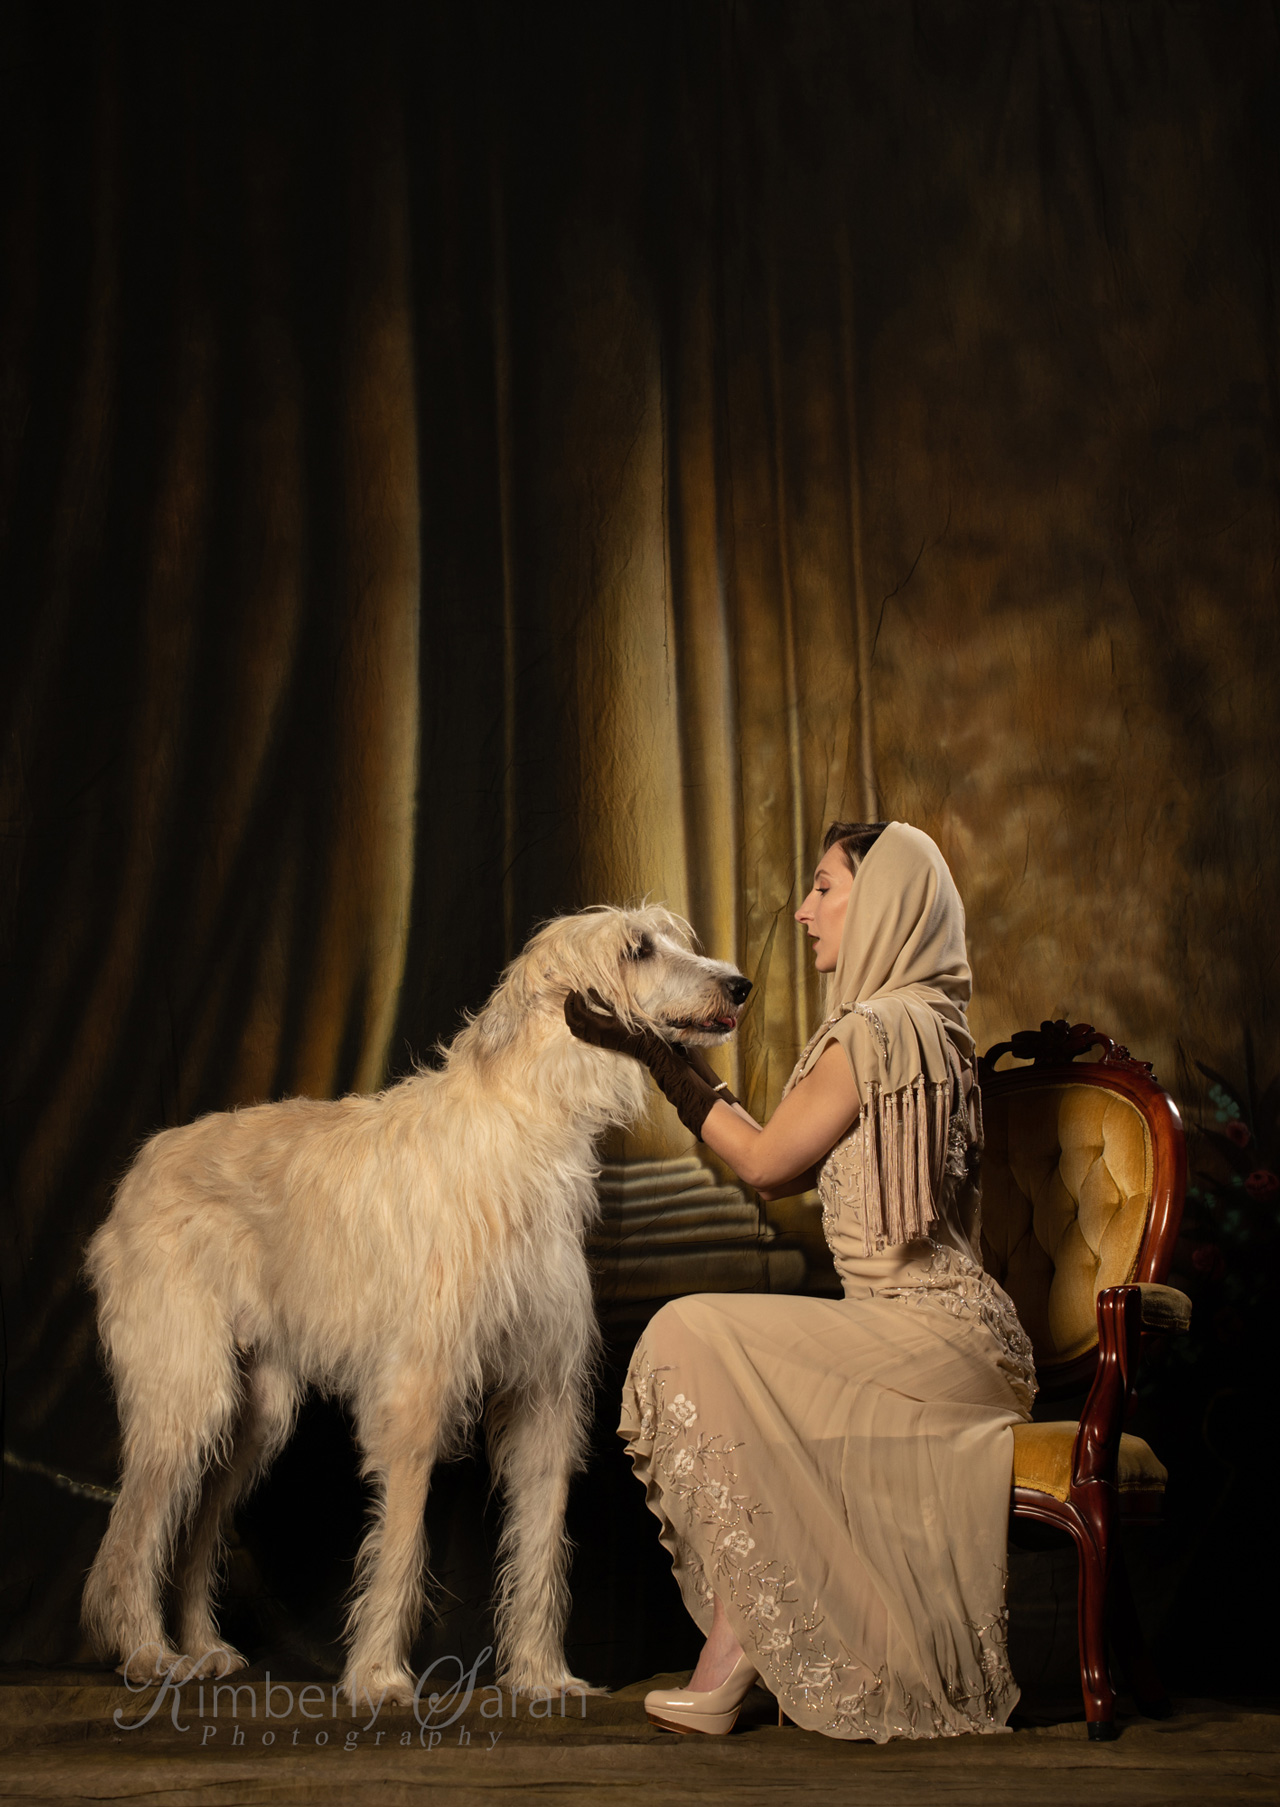 irish wolfhound, new england dog, kimberly sarah photography, 20s fashion